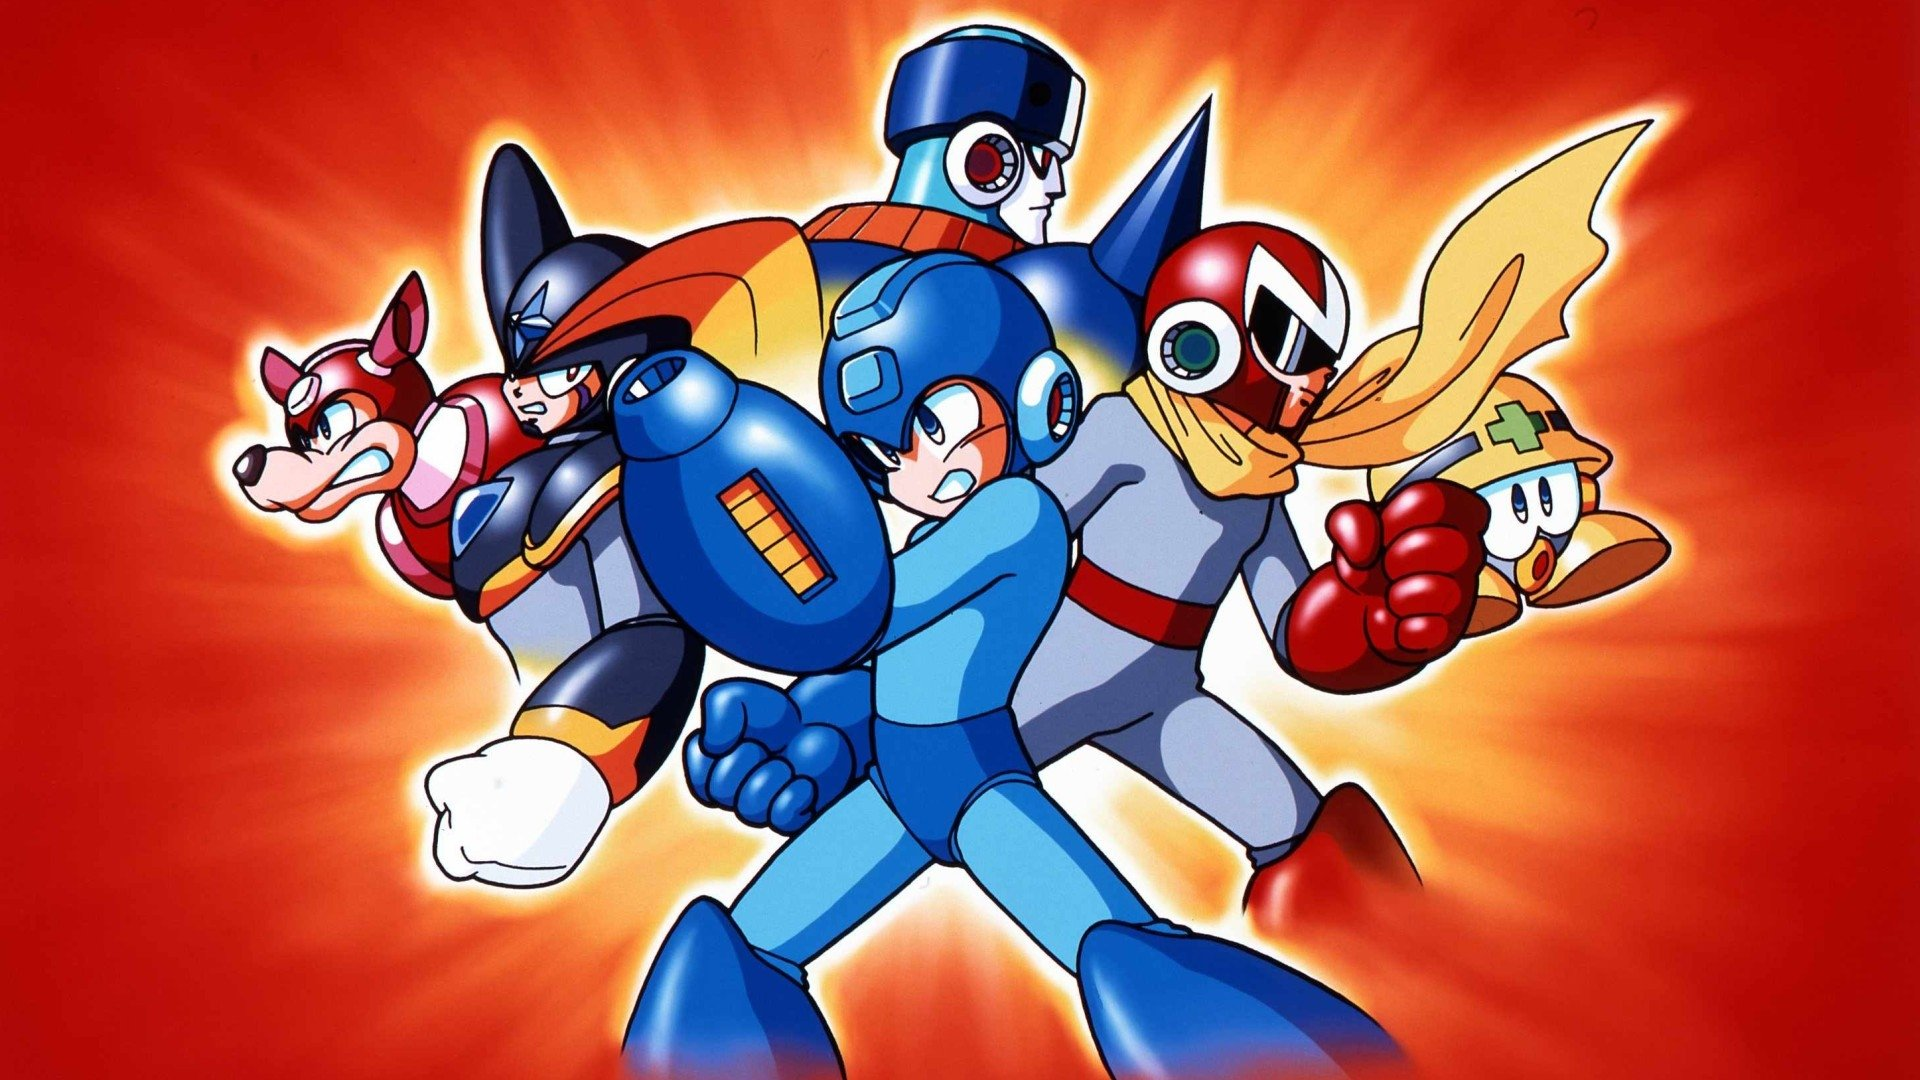 5 Mega Man 8 Hd Wallpapers Background Images Wallpaper Abyss